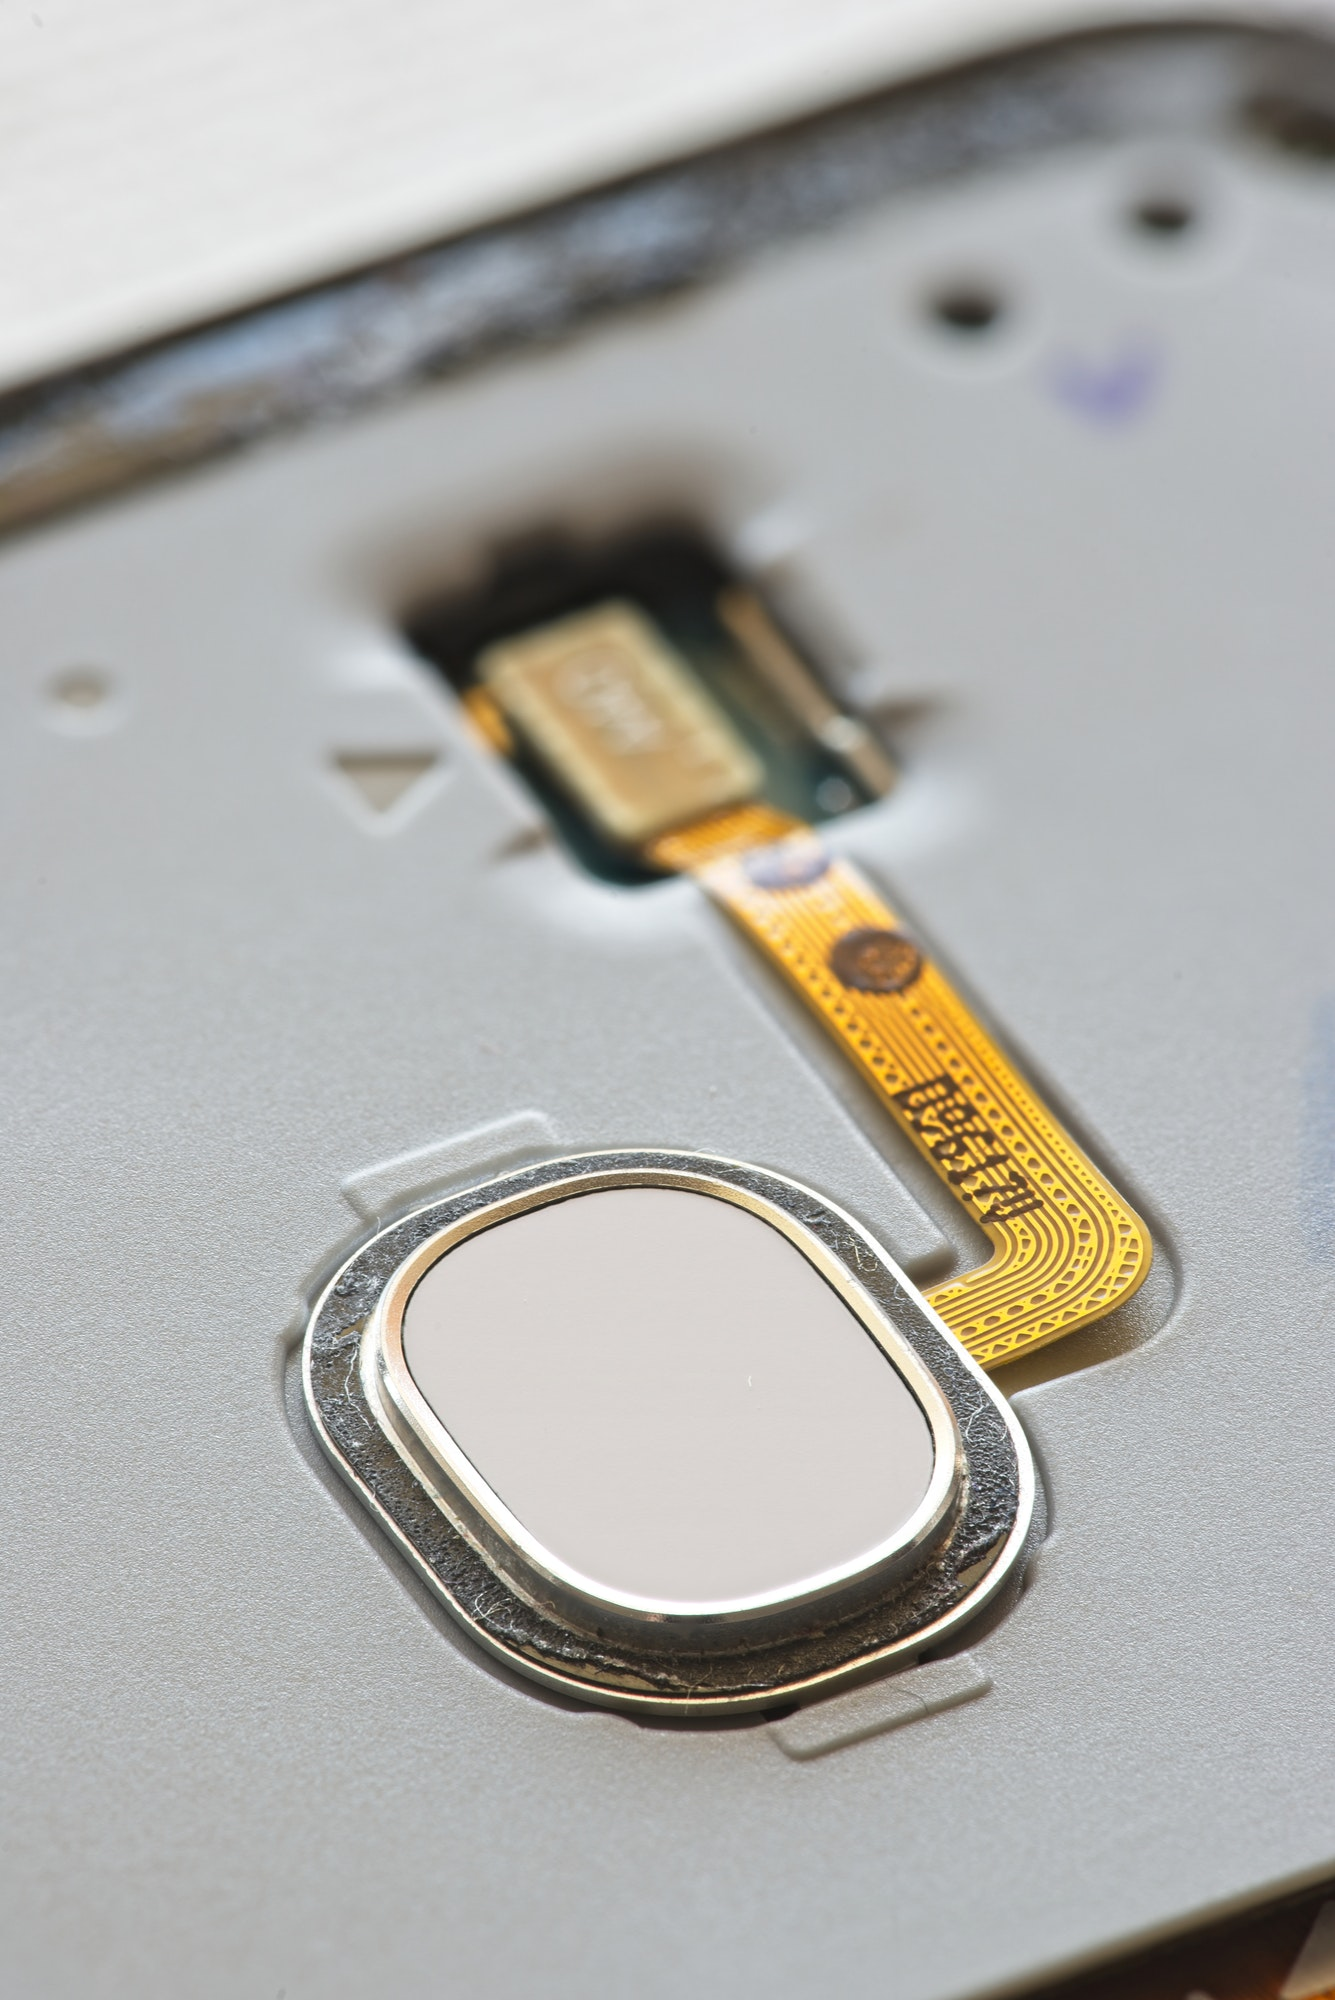 Macro detail of fingerprint scanner on smartphone with exposed electronic wires.